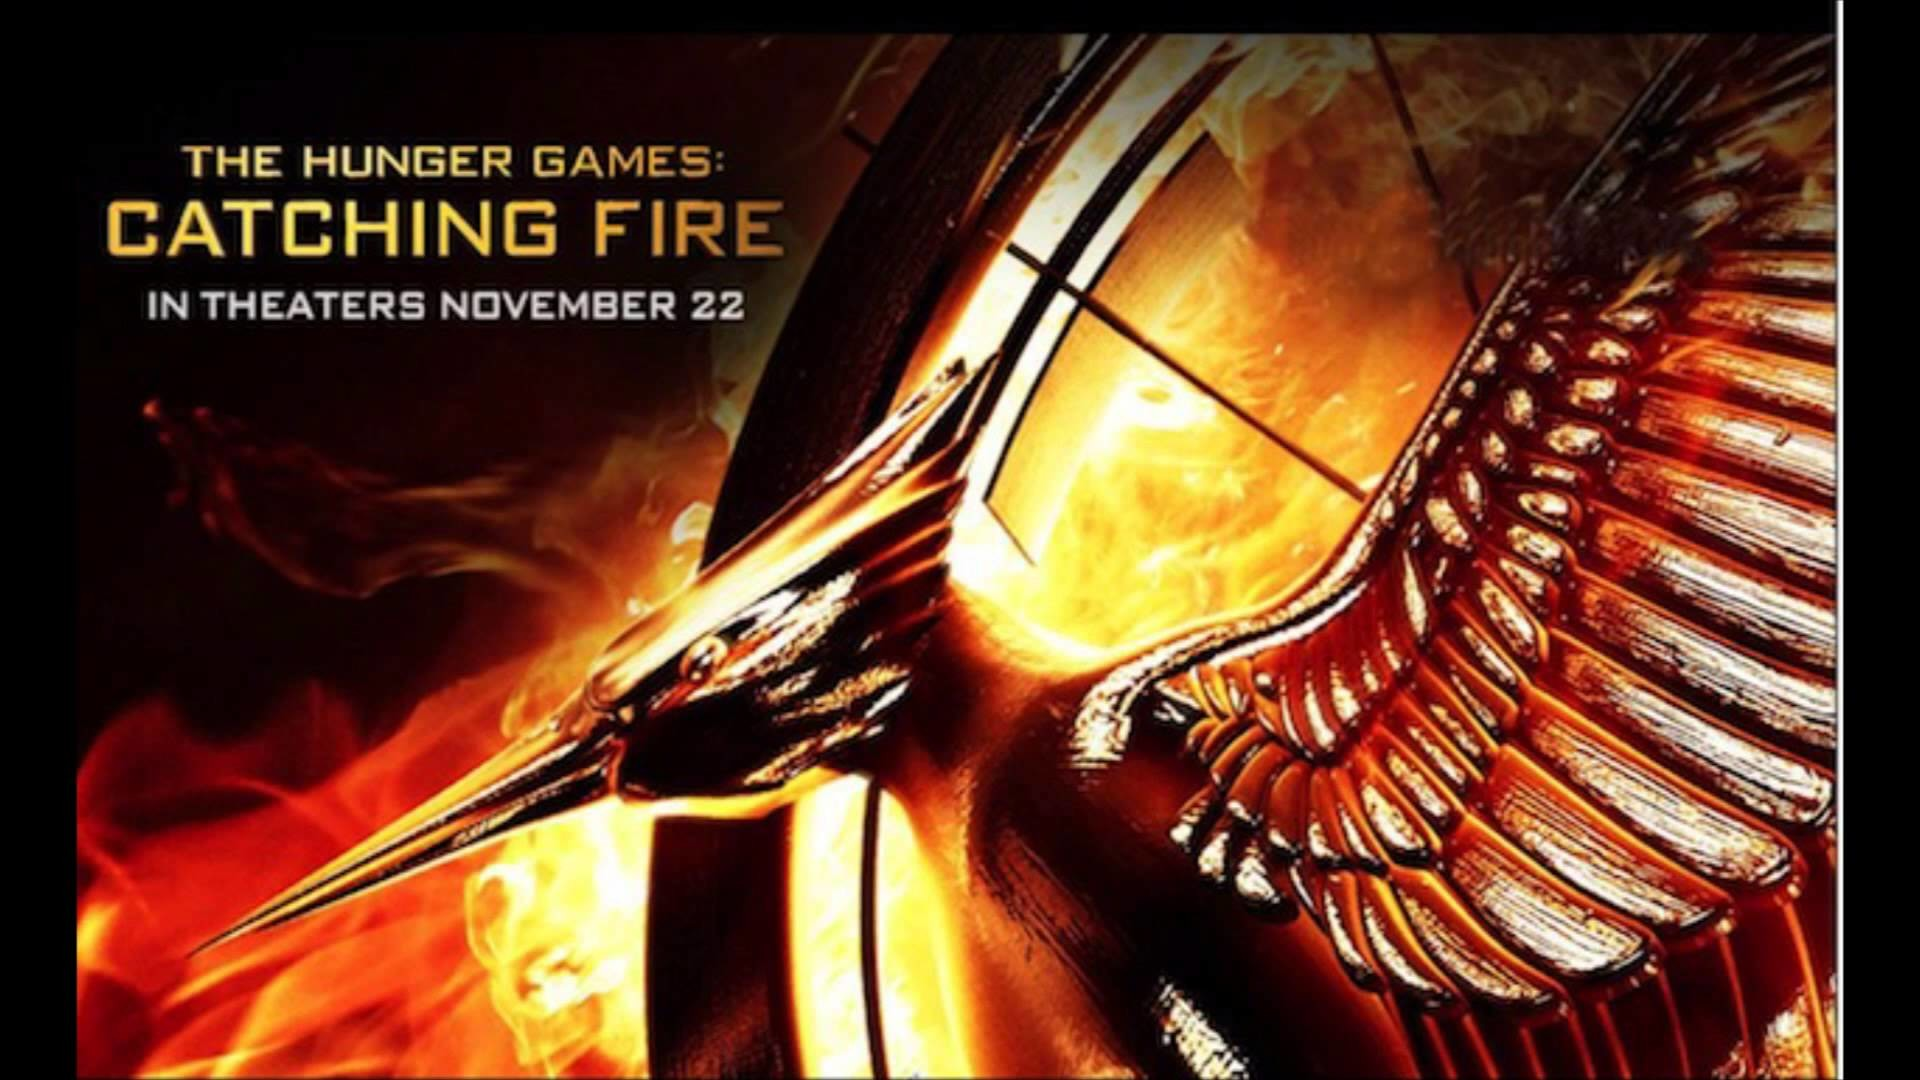 1920x1080 Hunger Games: Catching Fire - Trailer Music: T.T.L. - Beyond Fire - YouTube